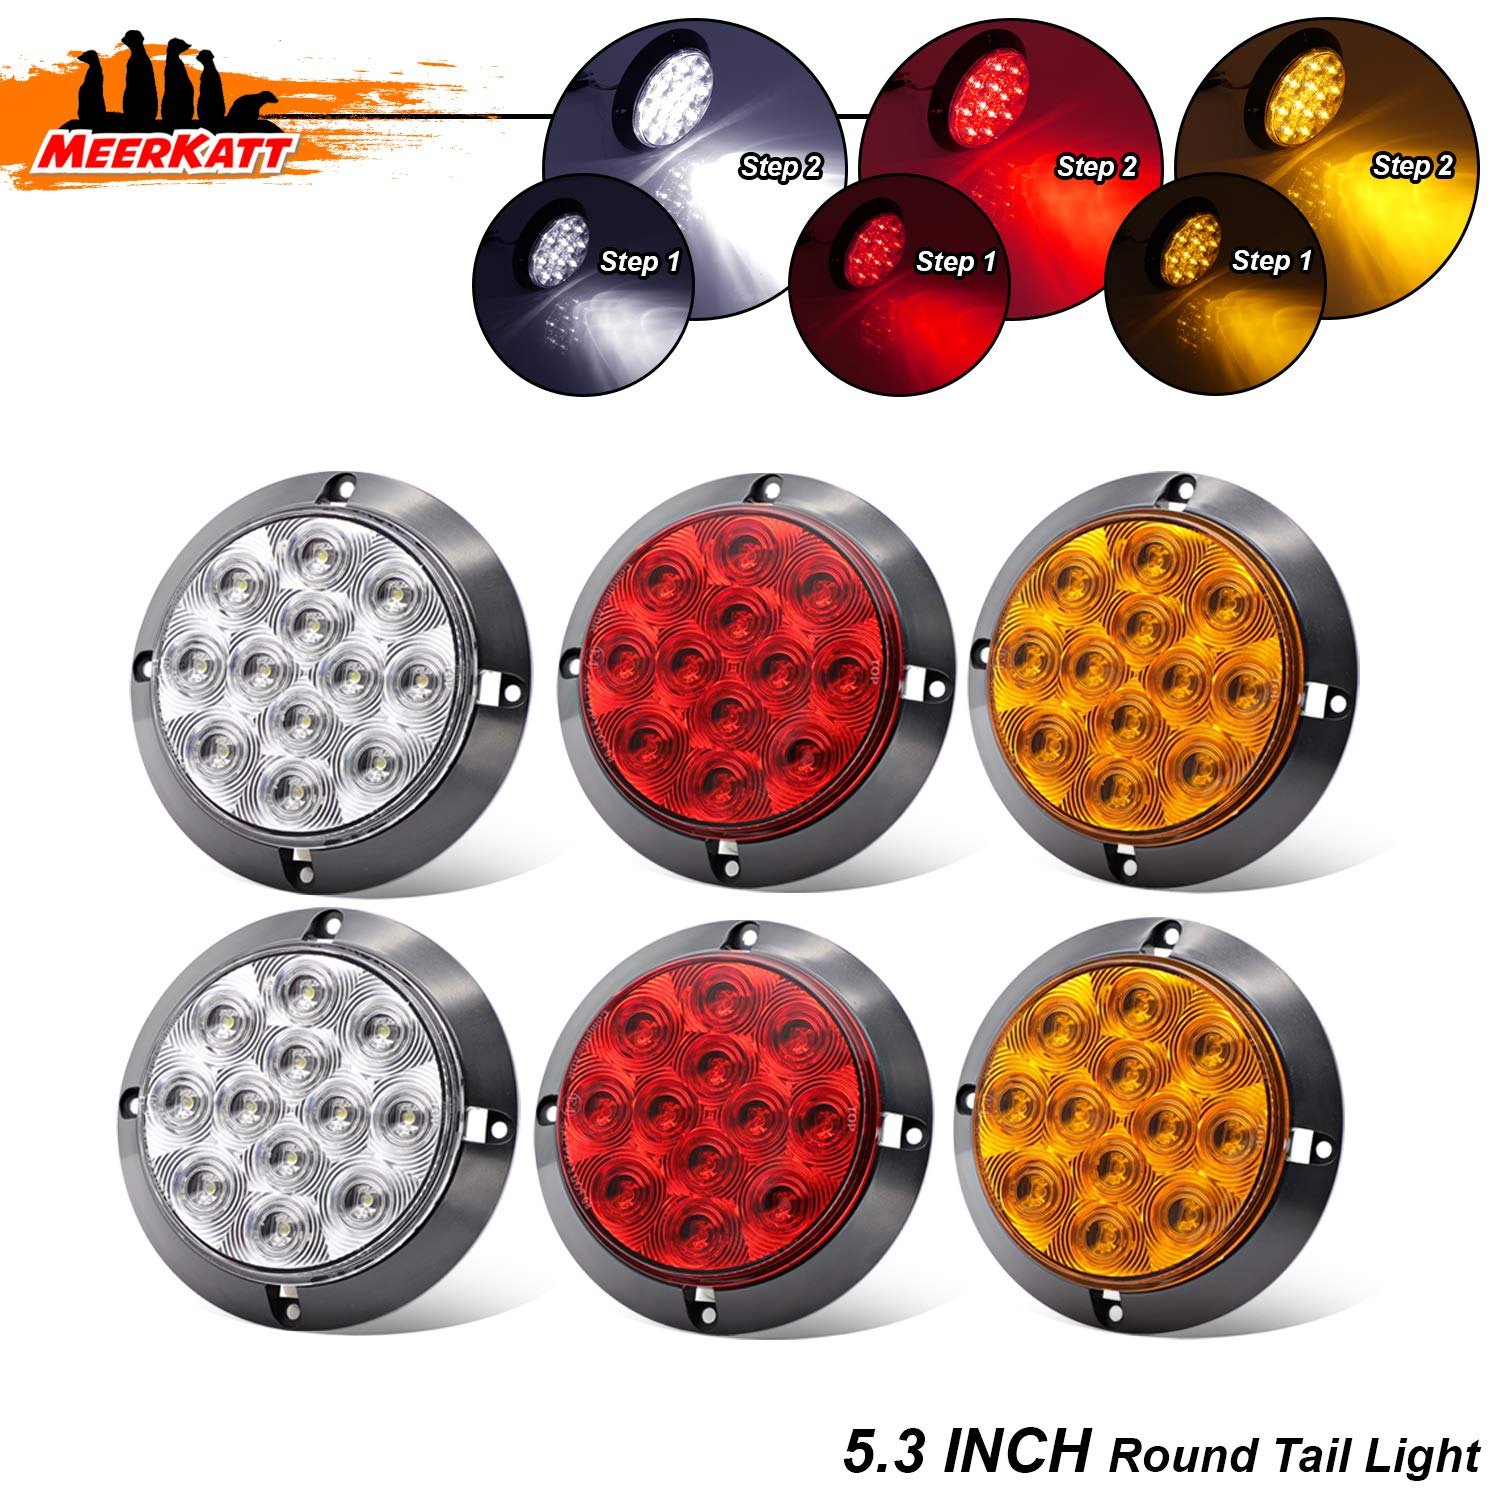 Meerkatt (Pack of 6) 4 Inch 2 Amber + 2 Red + 2 White LED 12 Diodes Round Trailer Marker Utility Light Tail Turn Signal Brake Rear Truck Bus Tow Lorry Tractor Jeep RV Camper 12V DC Clearance Lamp GK12 by Meerkatt